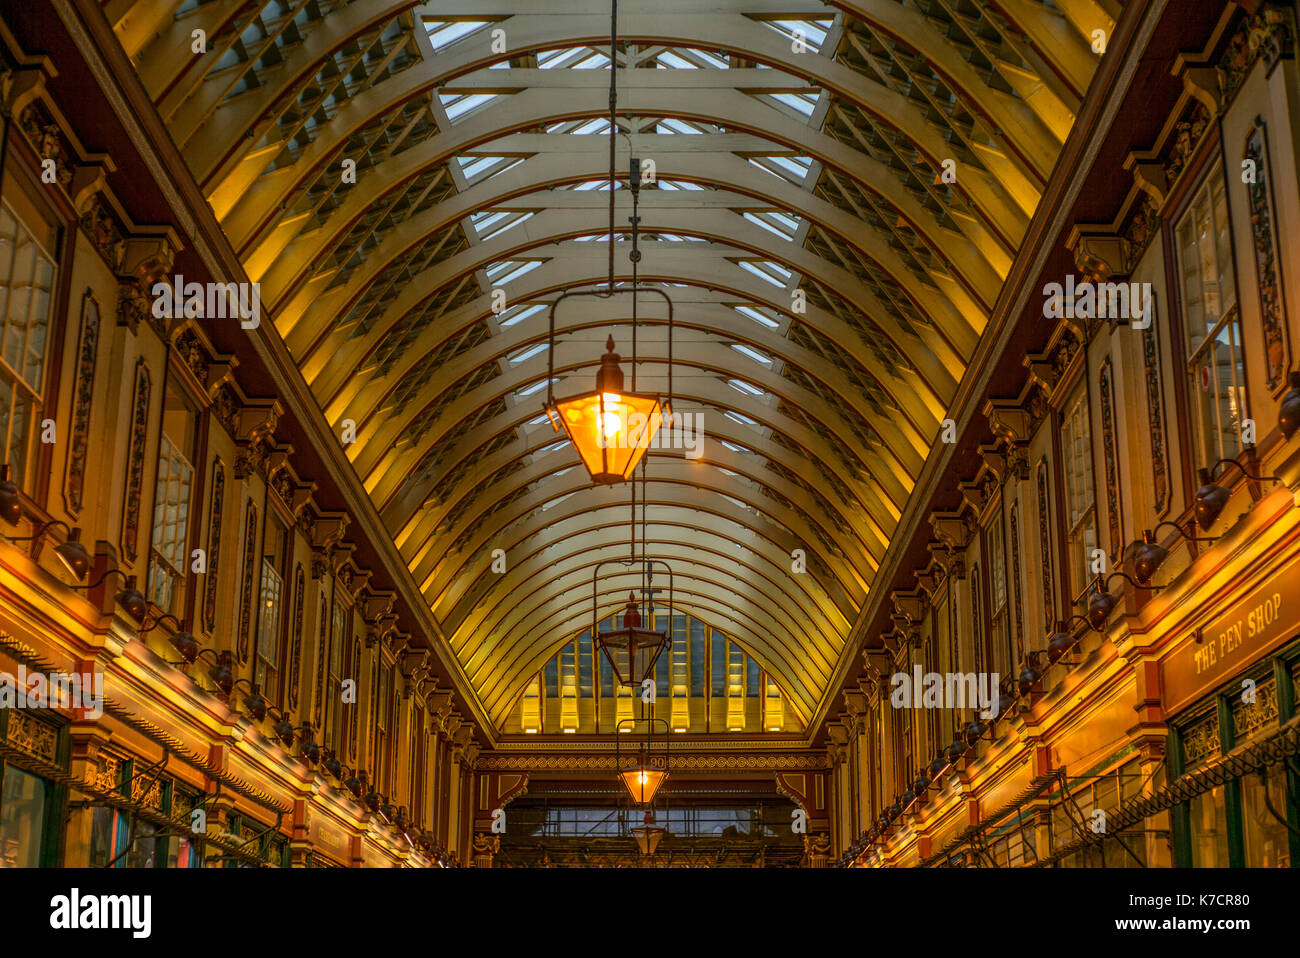 LONDON, UNITED KINGDOM - AUGUST 29, 2017: View of Leadenhall Market in London - 3 - Stock Image